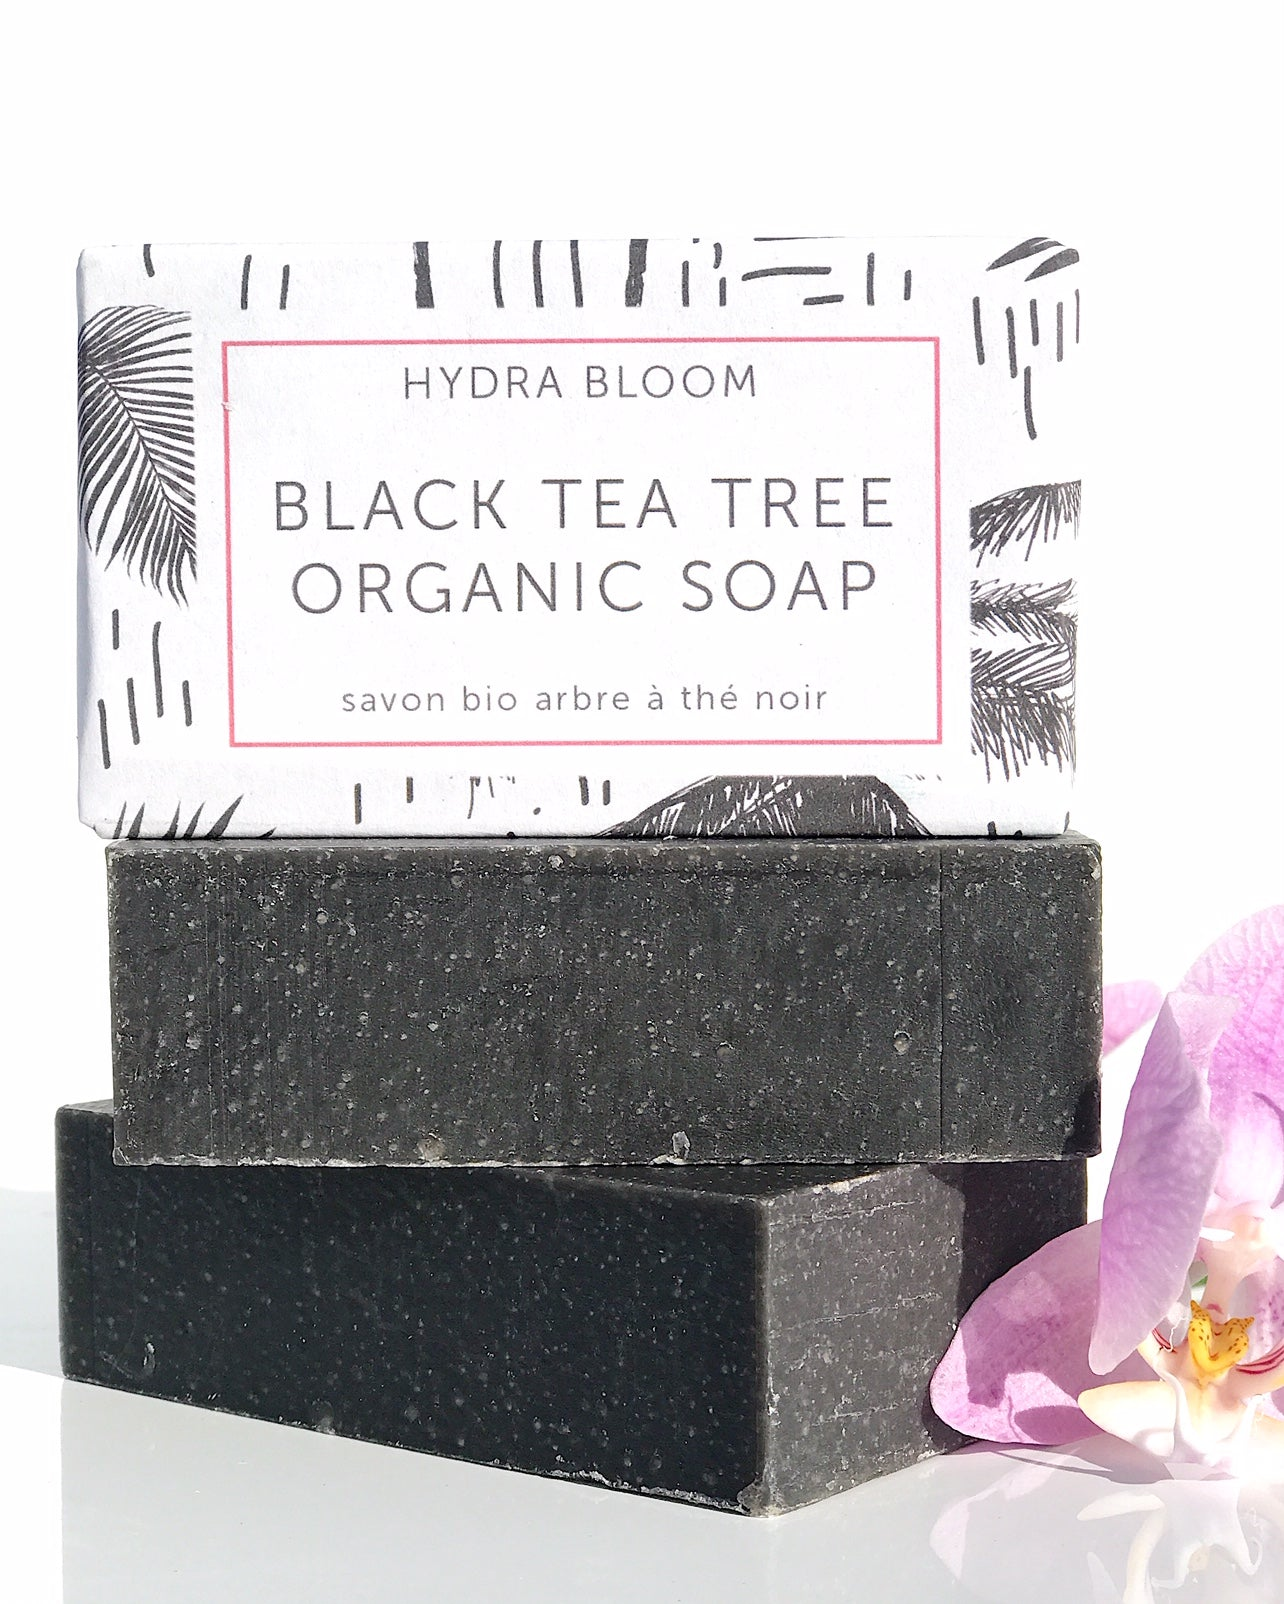 Hydra Bloom Black Tea Tree Organic Soap | Lucy B's